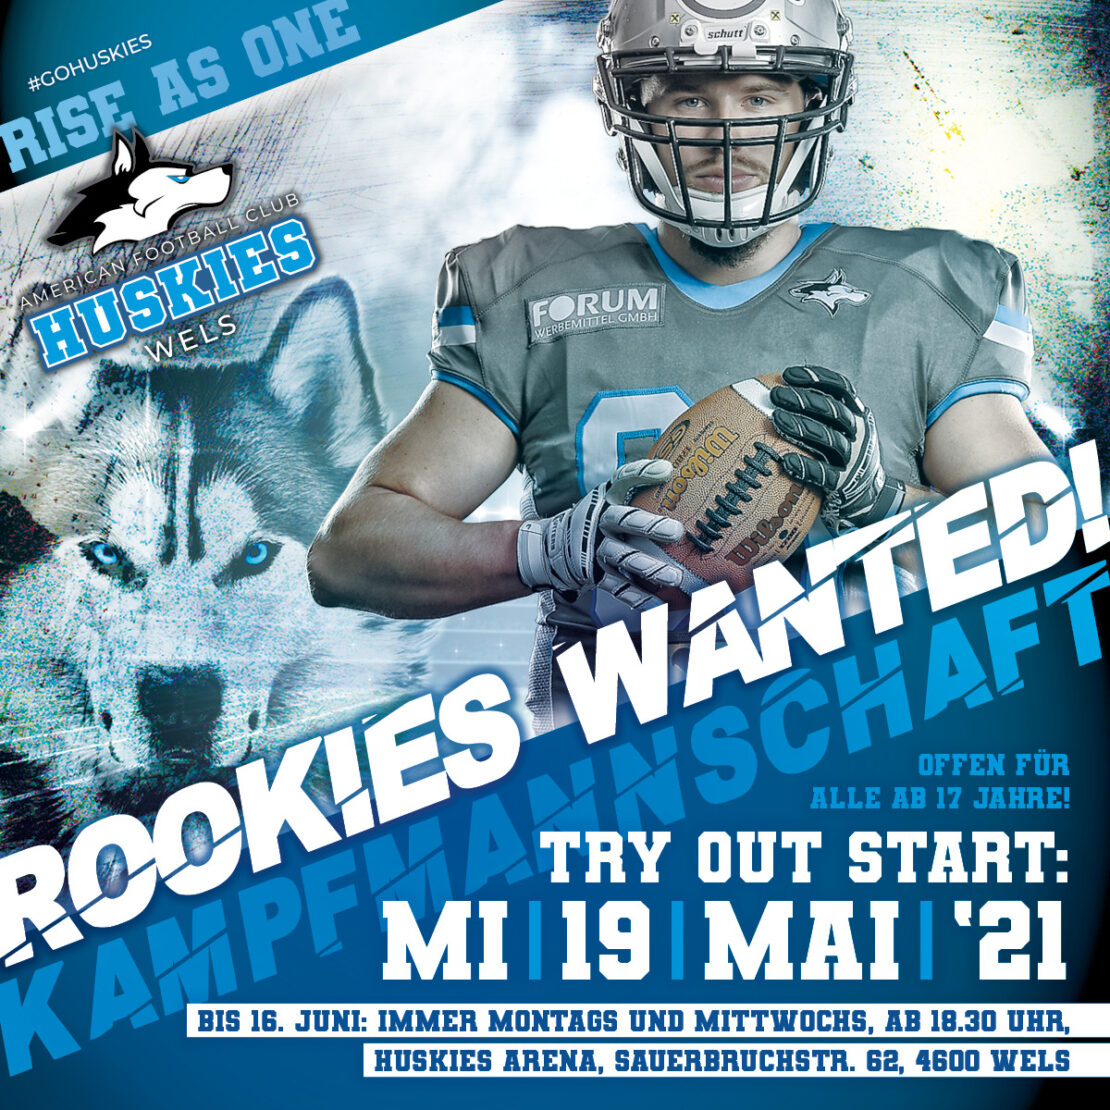 TRY OUT - Rookies Wanted